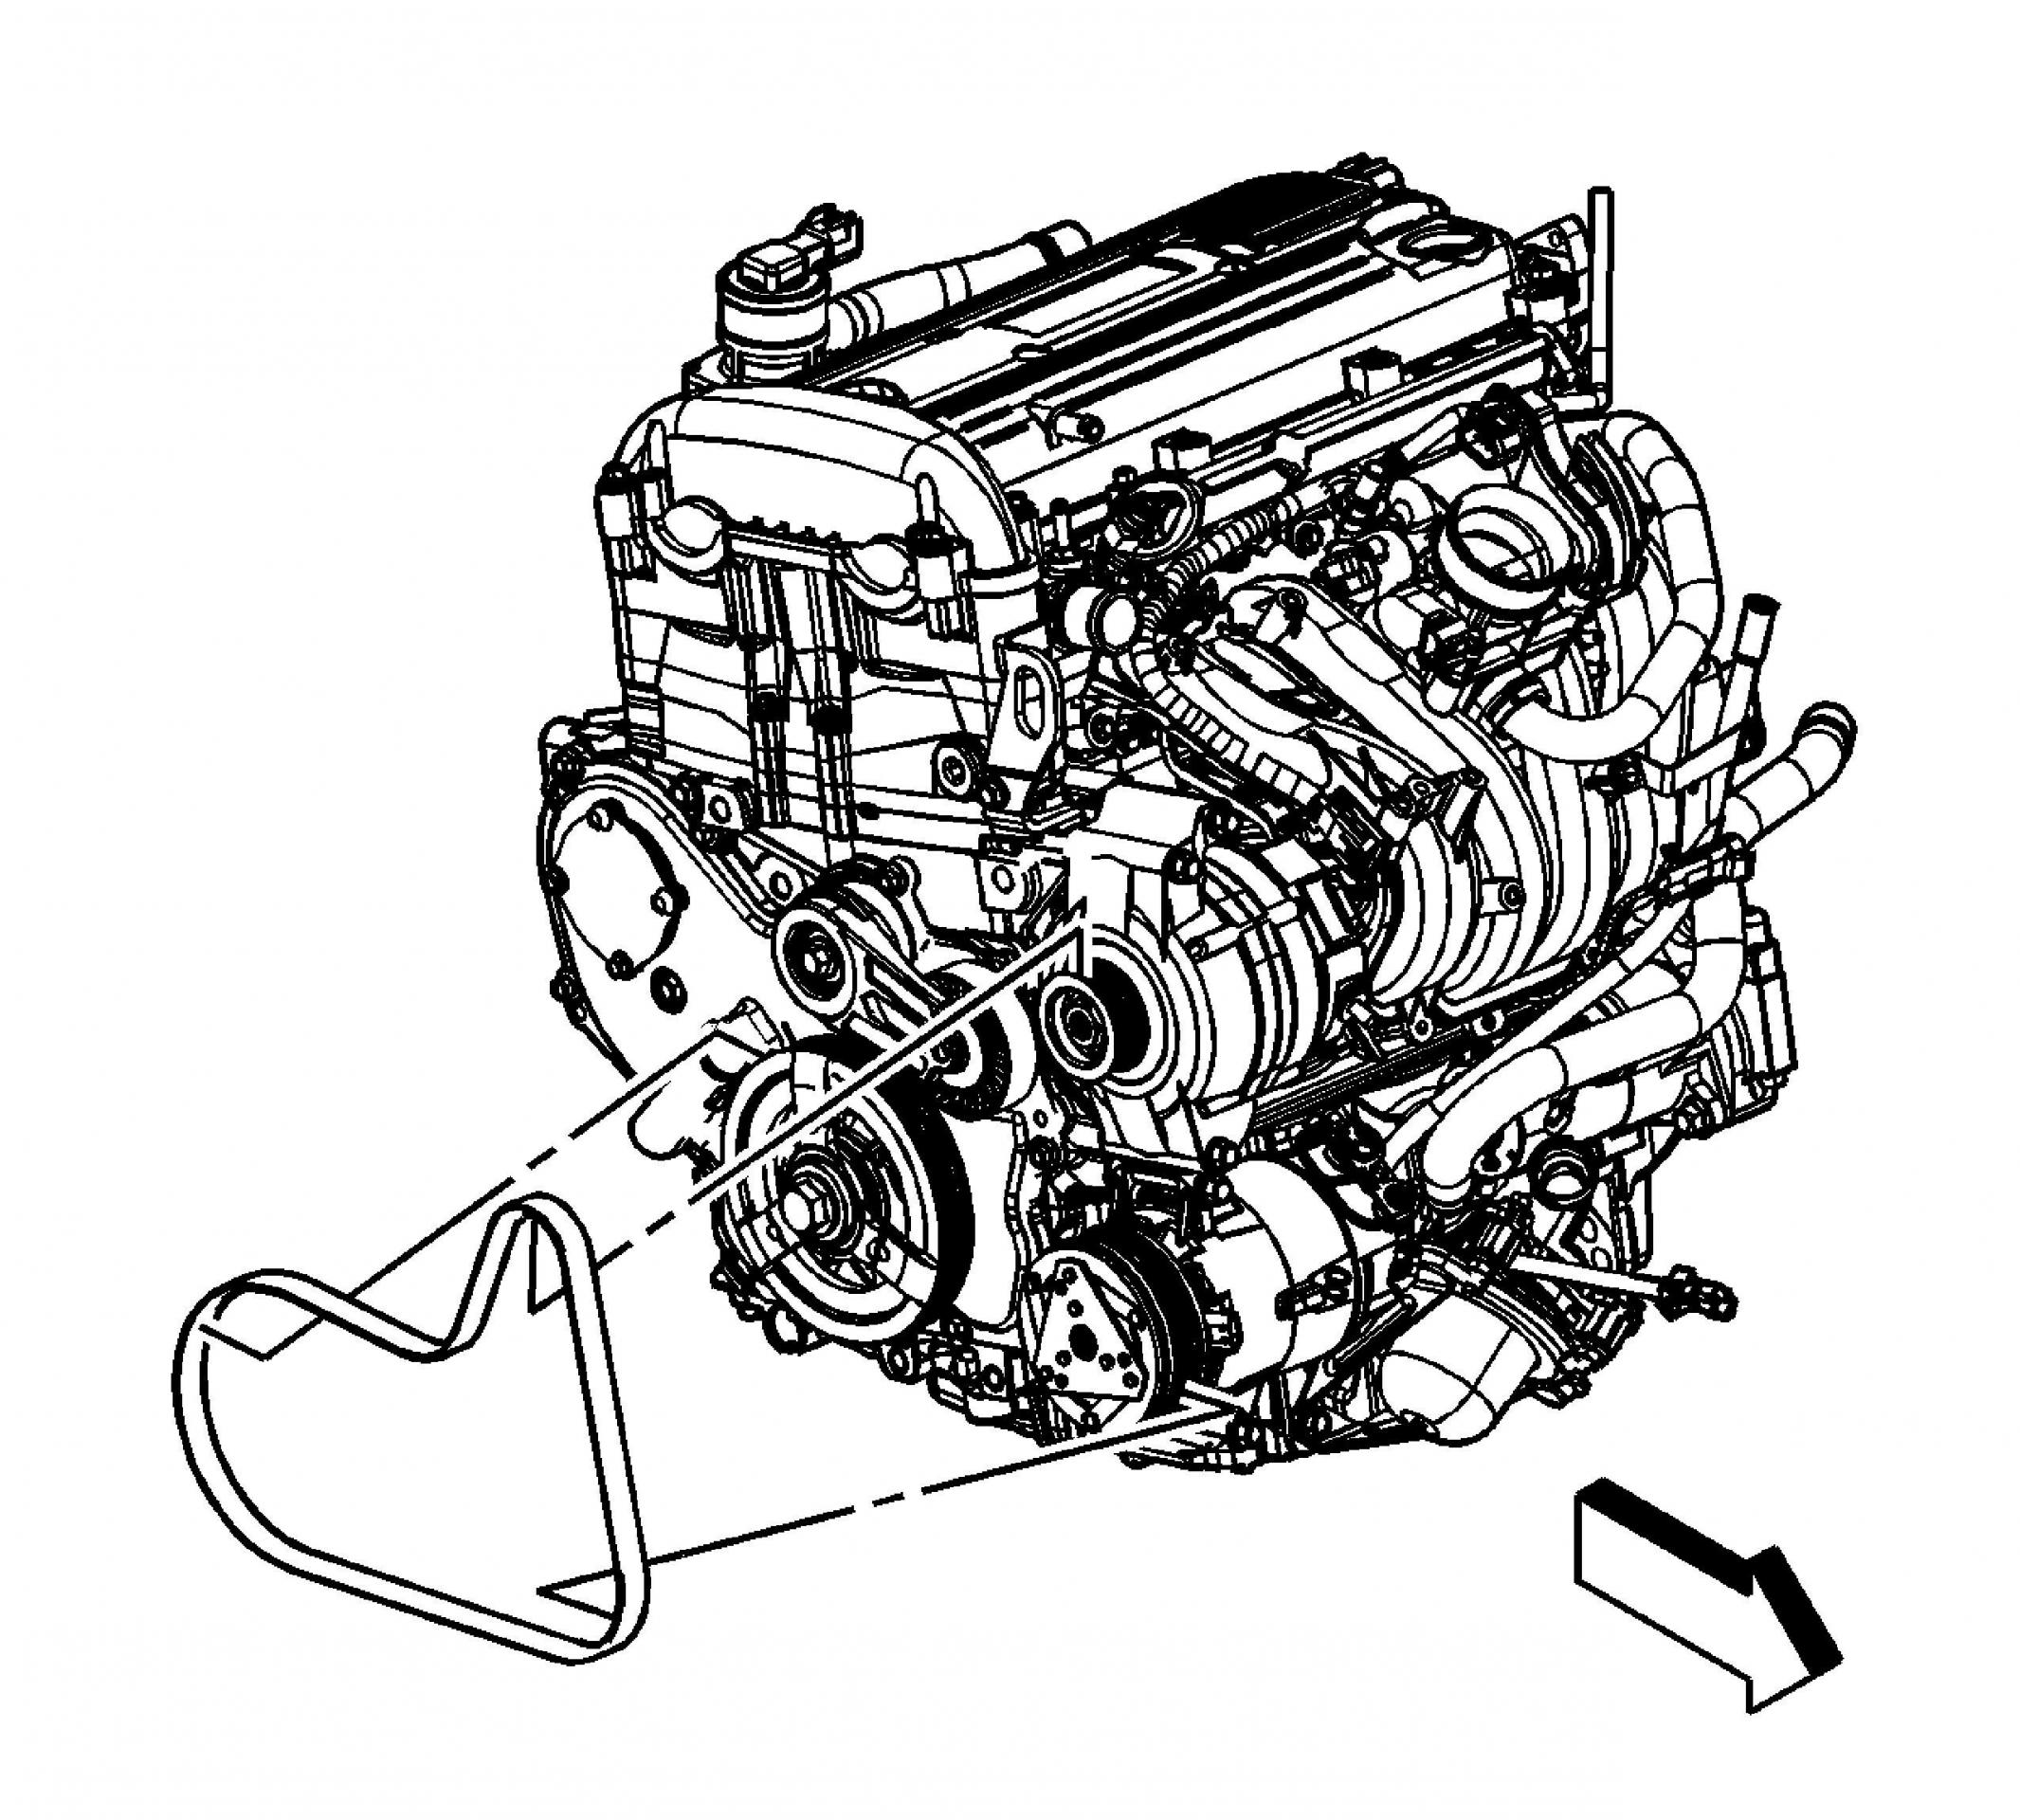 2006 chevy cobalt 2.2 engine diagram